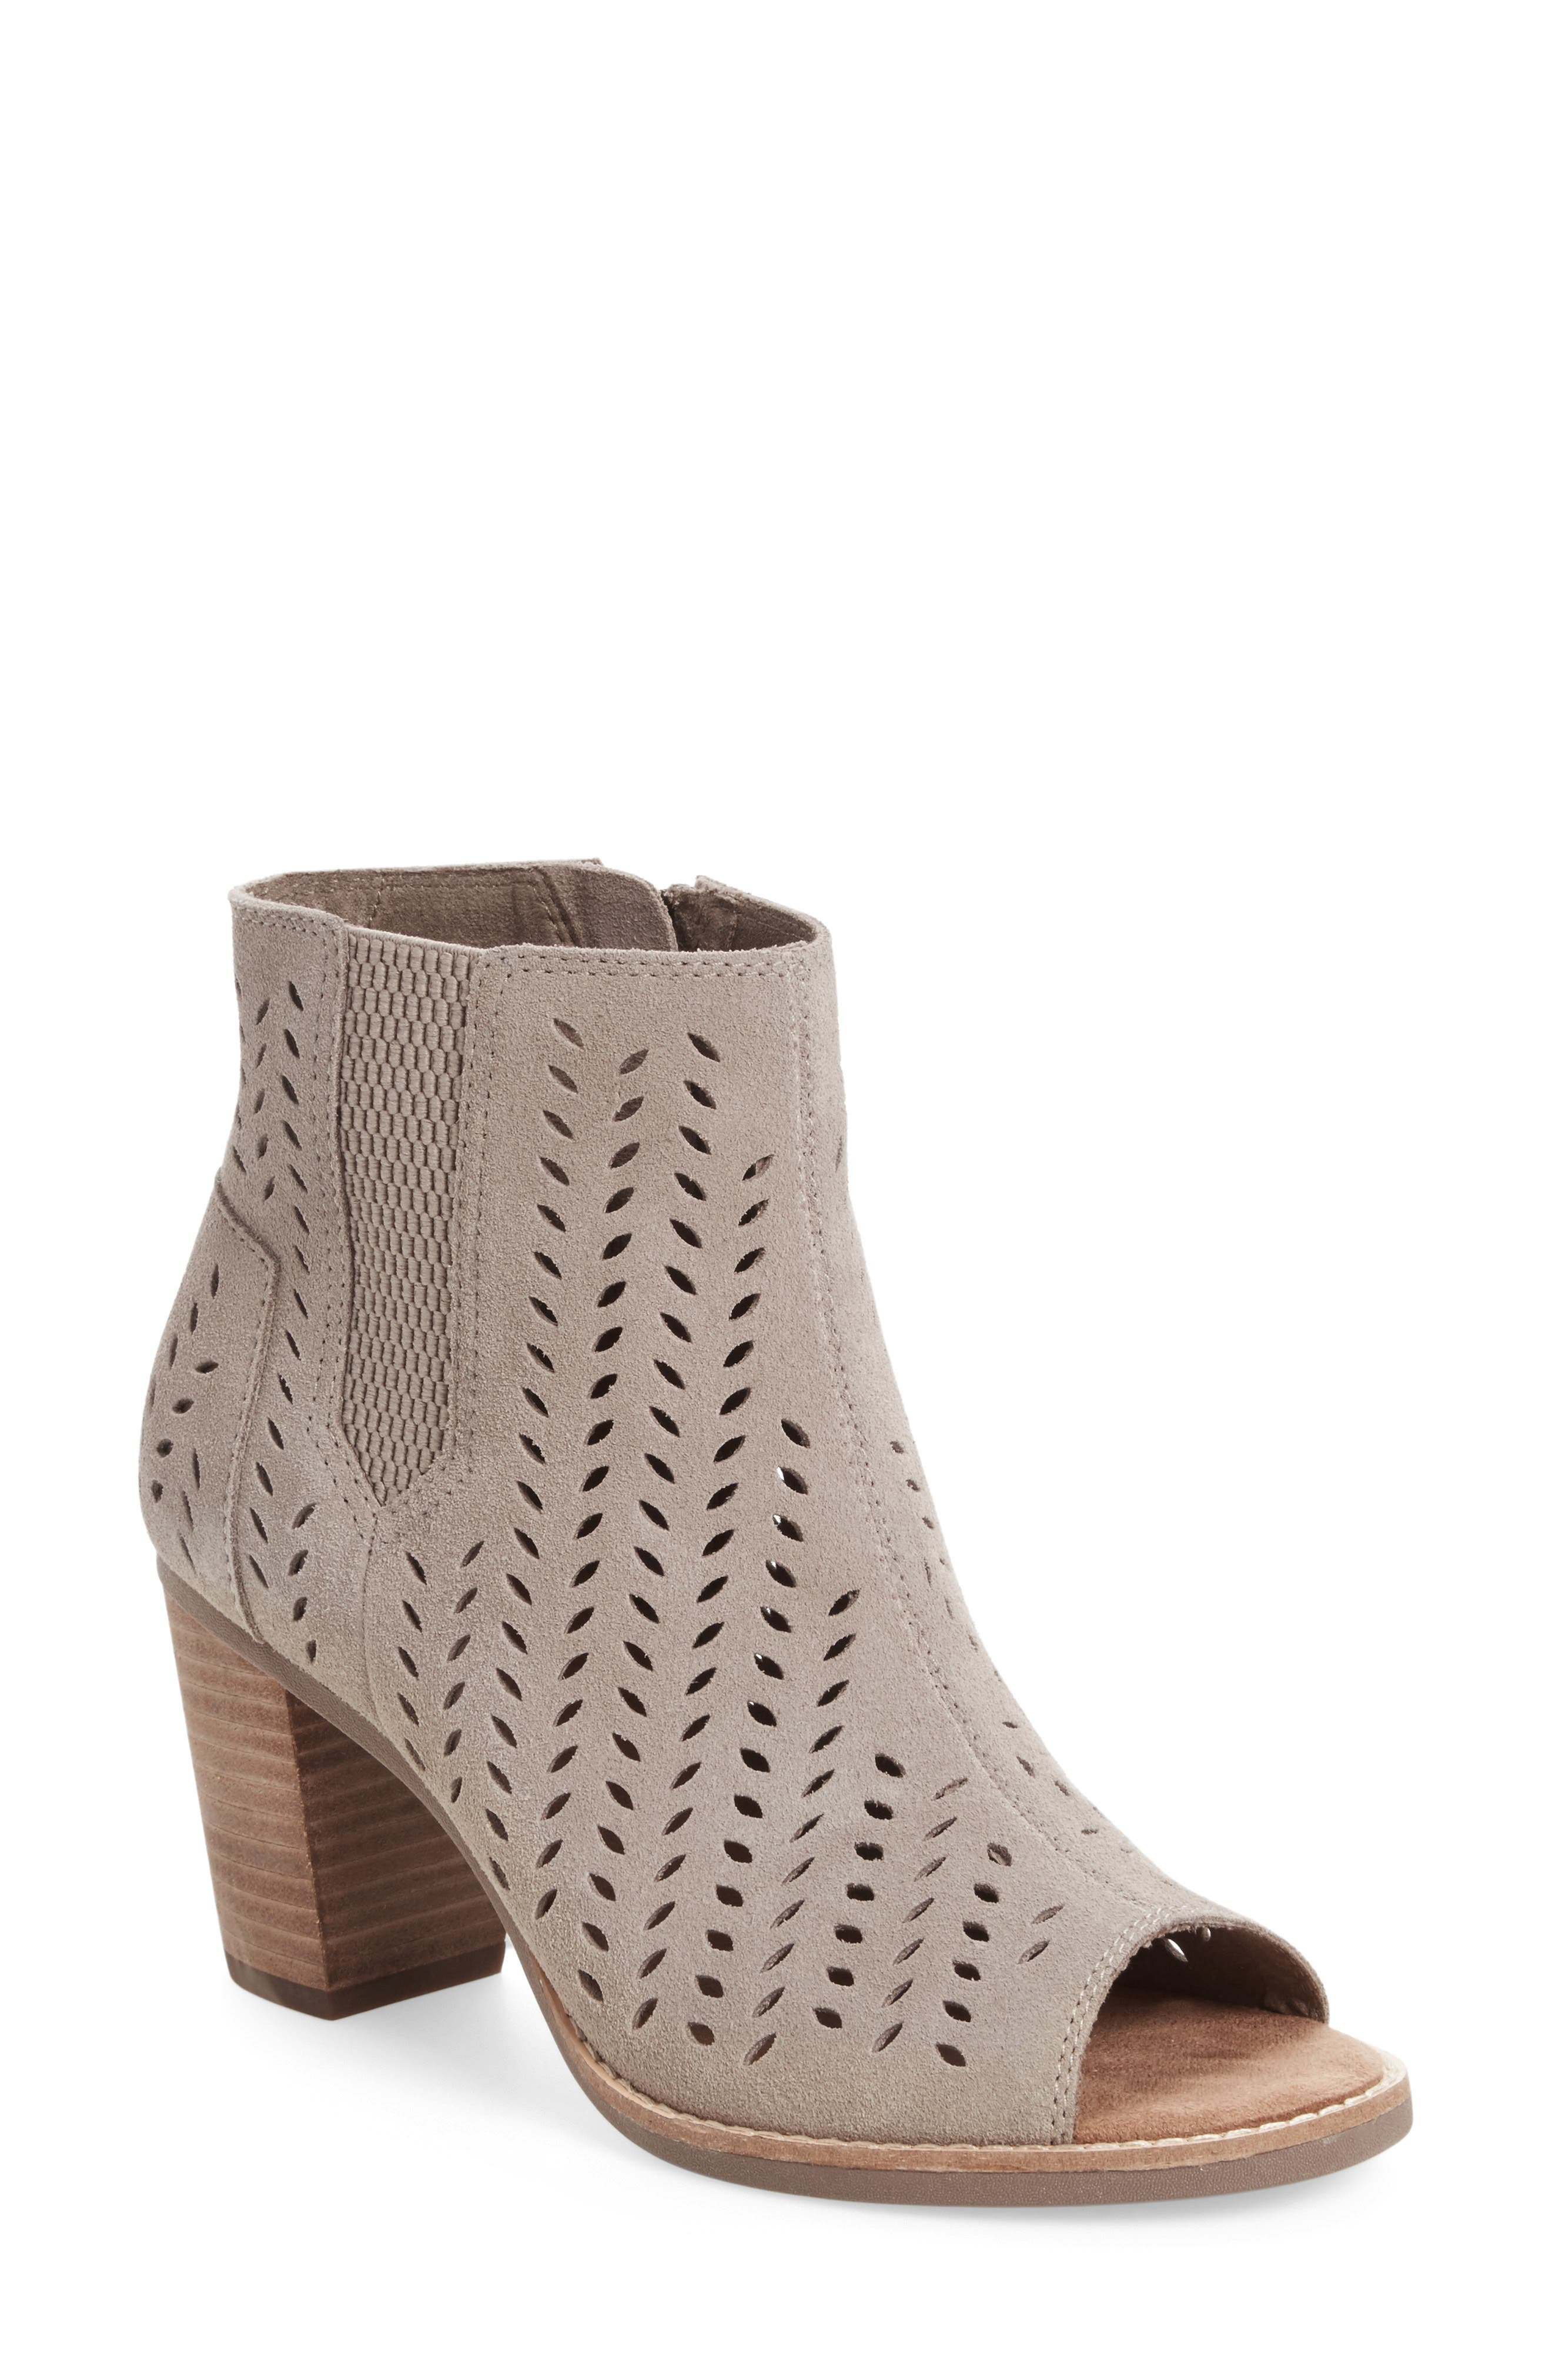 Main Image - TOMS Majorca Perforated Suede Bootie (Women)